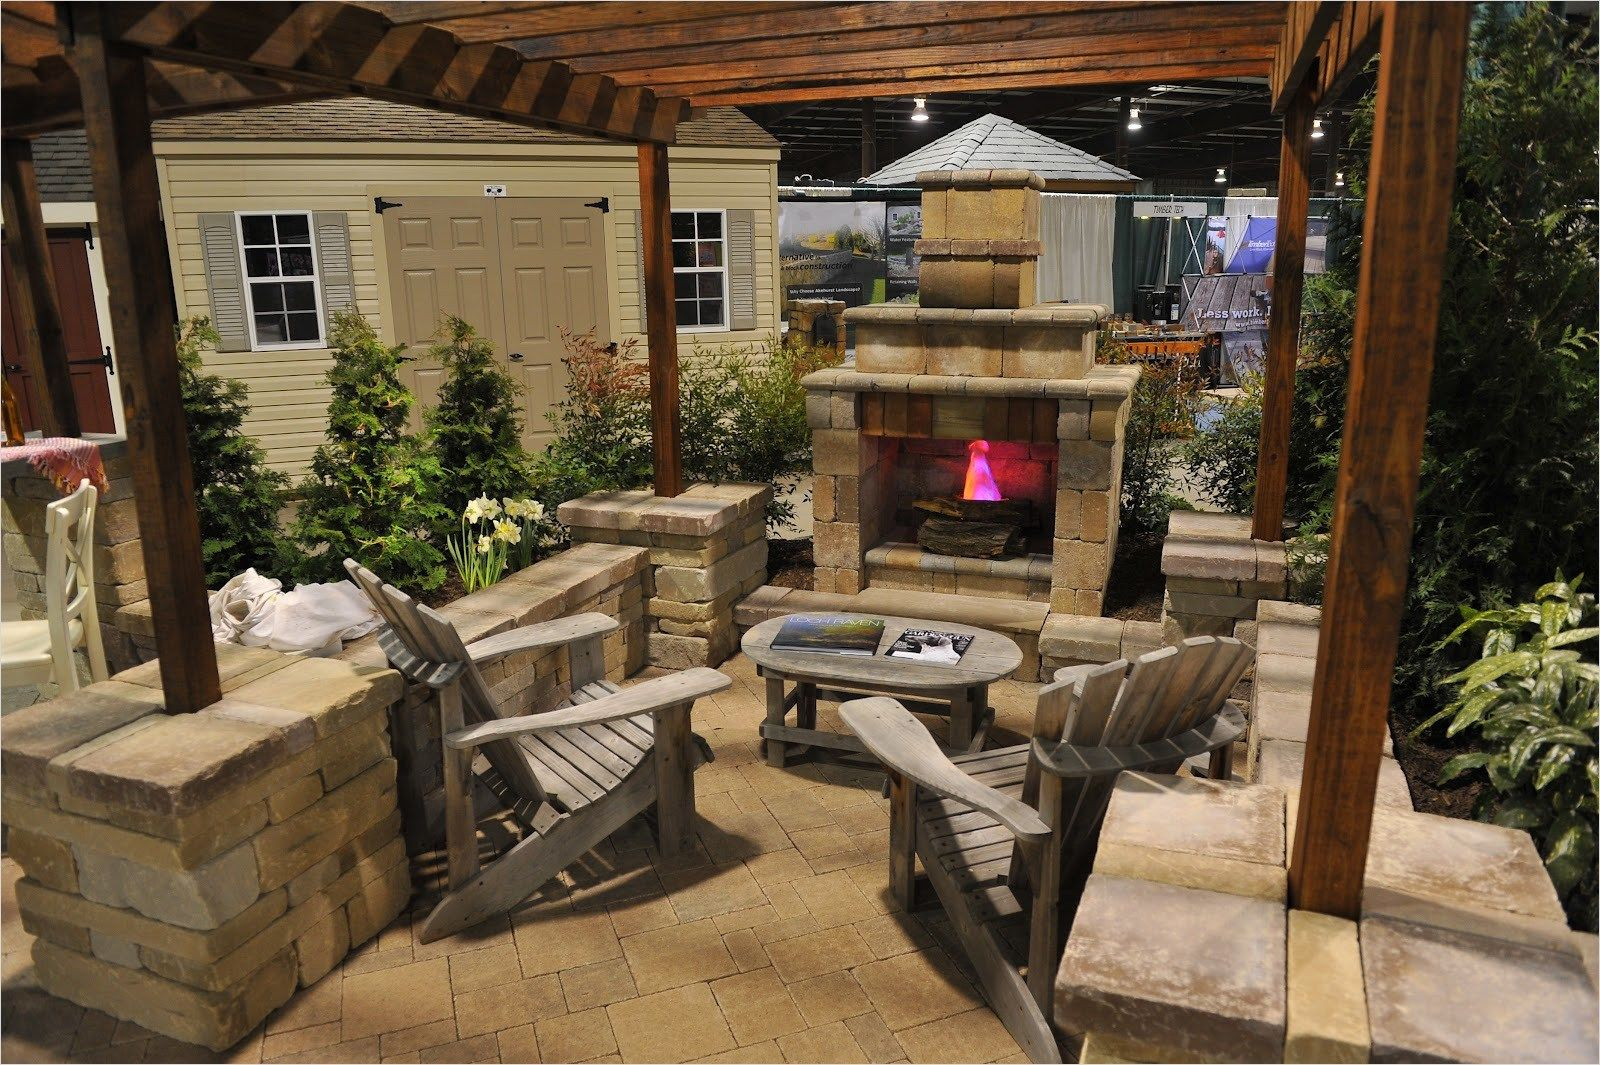 45 Perfect Backyard Bbq Landscaping Ideas 12 Backyard Bbq Entertainment Ideas Backyard And Yard Design F Backyard Remodel Backyard Entertaining Outdoor Remodel